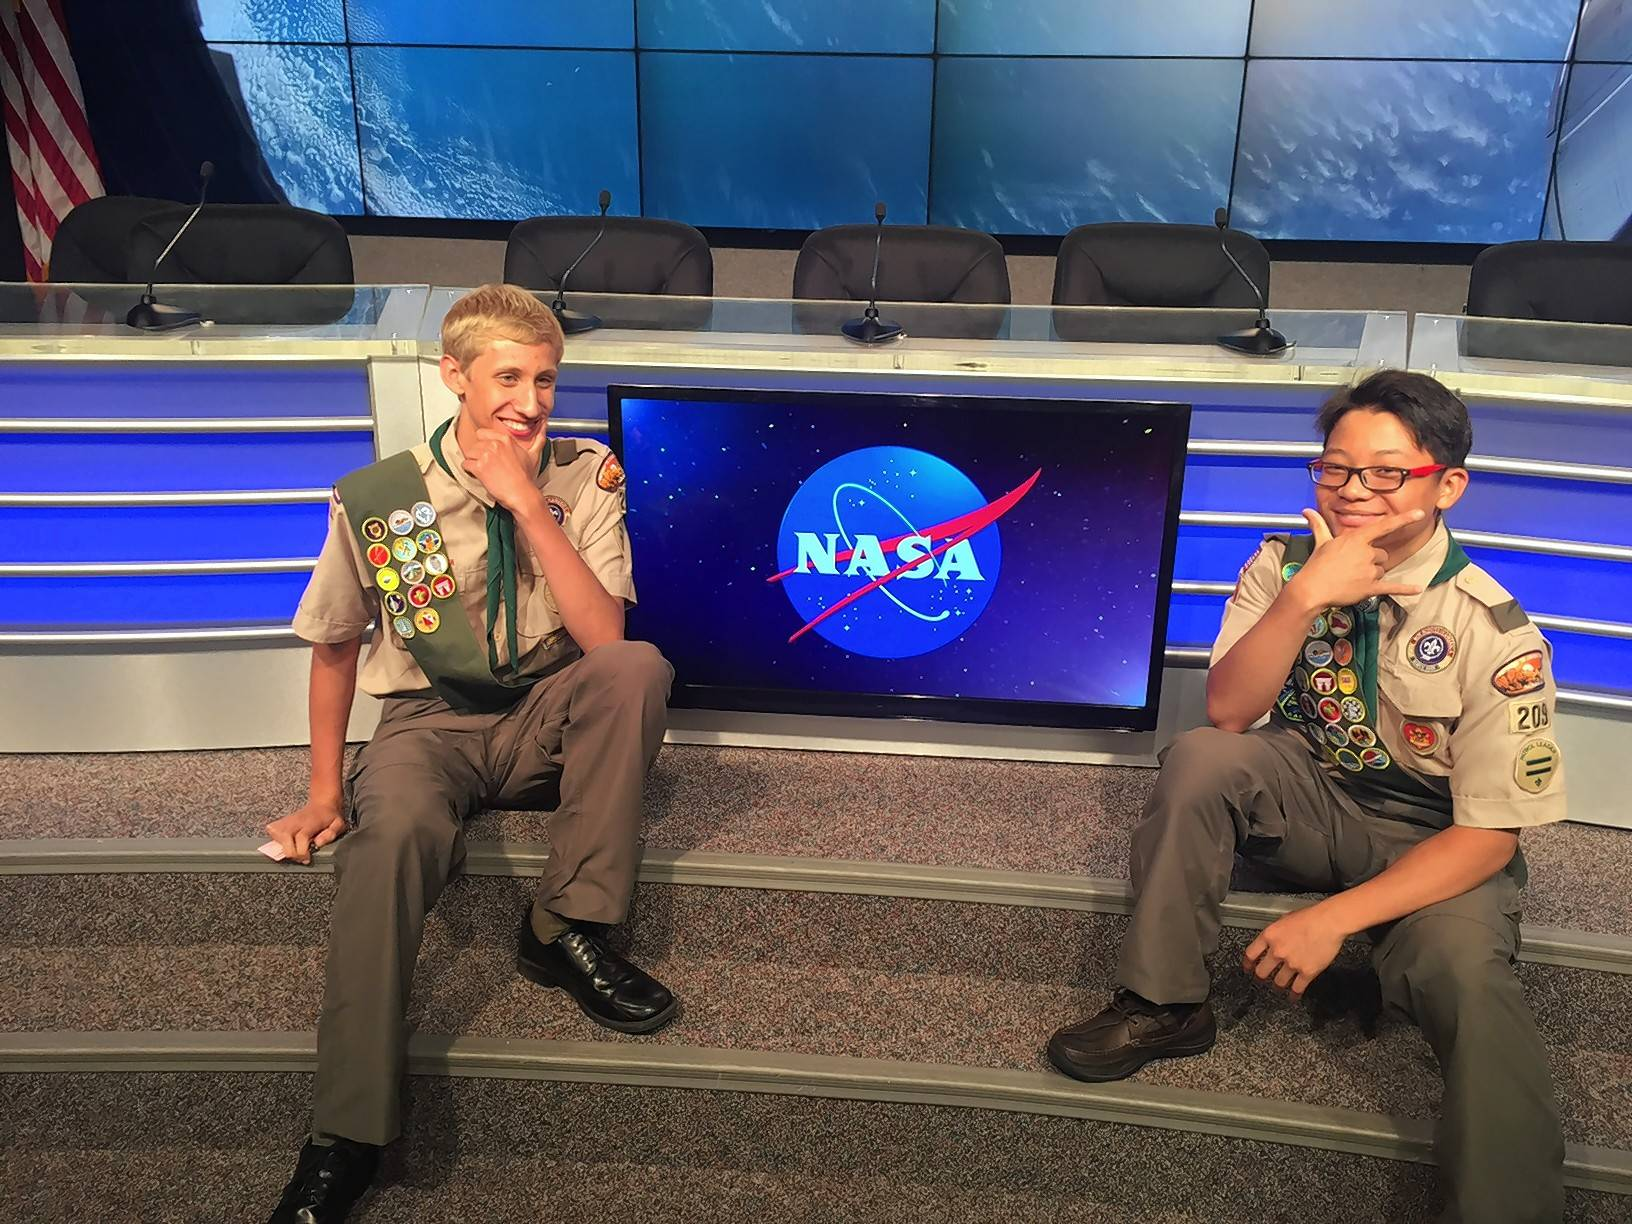 Andrew Frank, left, and Eliot Lee, pose before presenting their project on NASA TV.